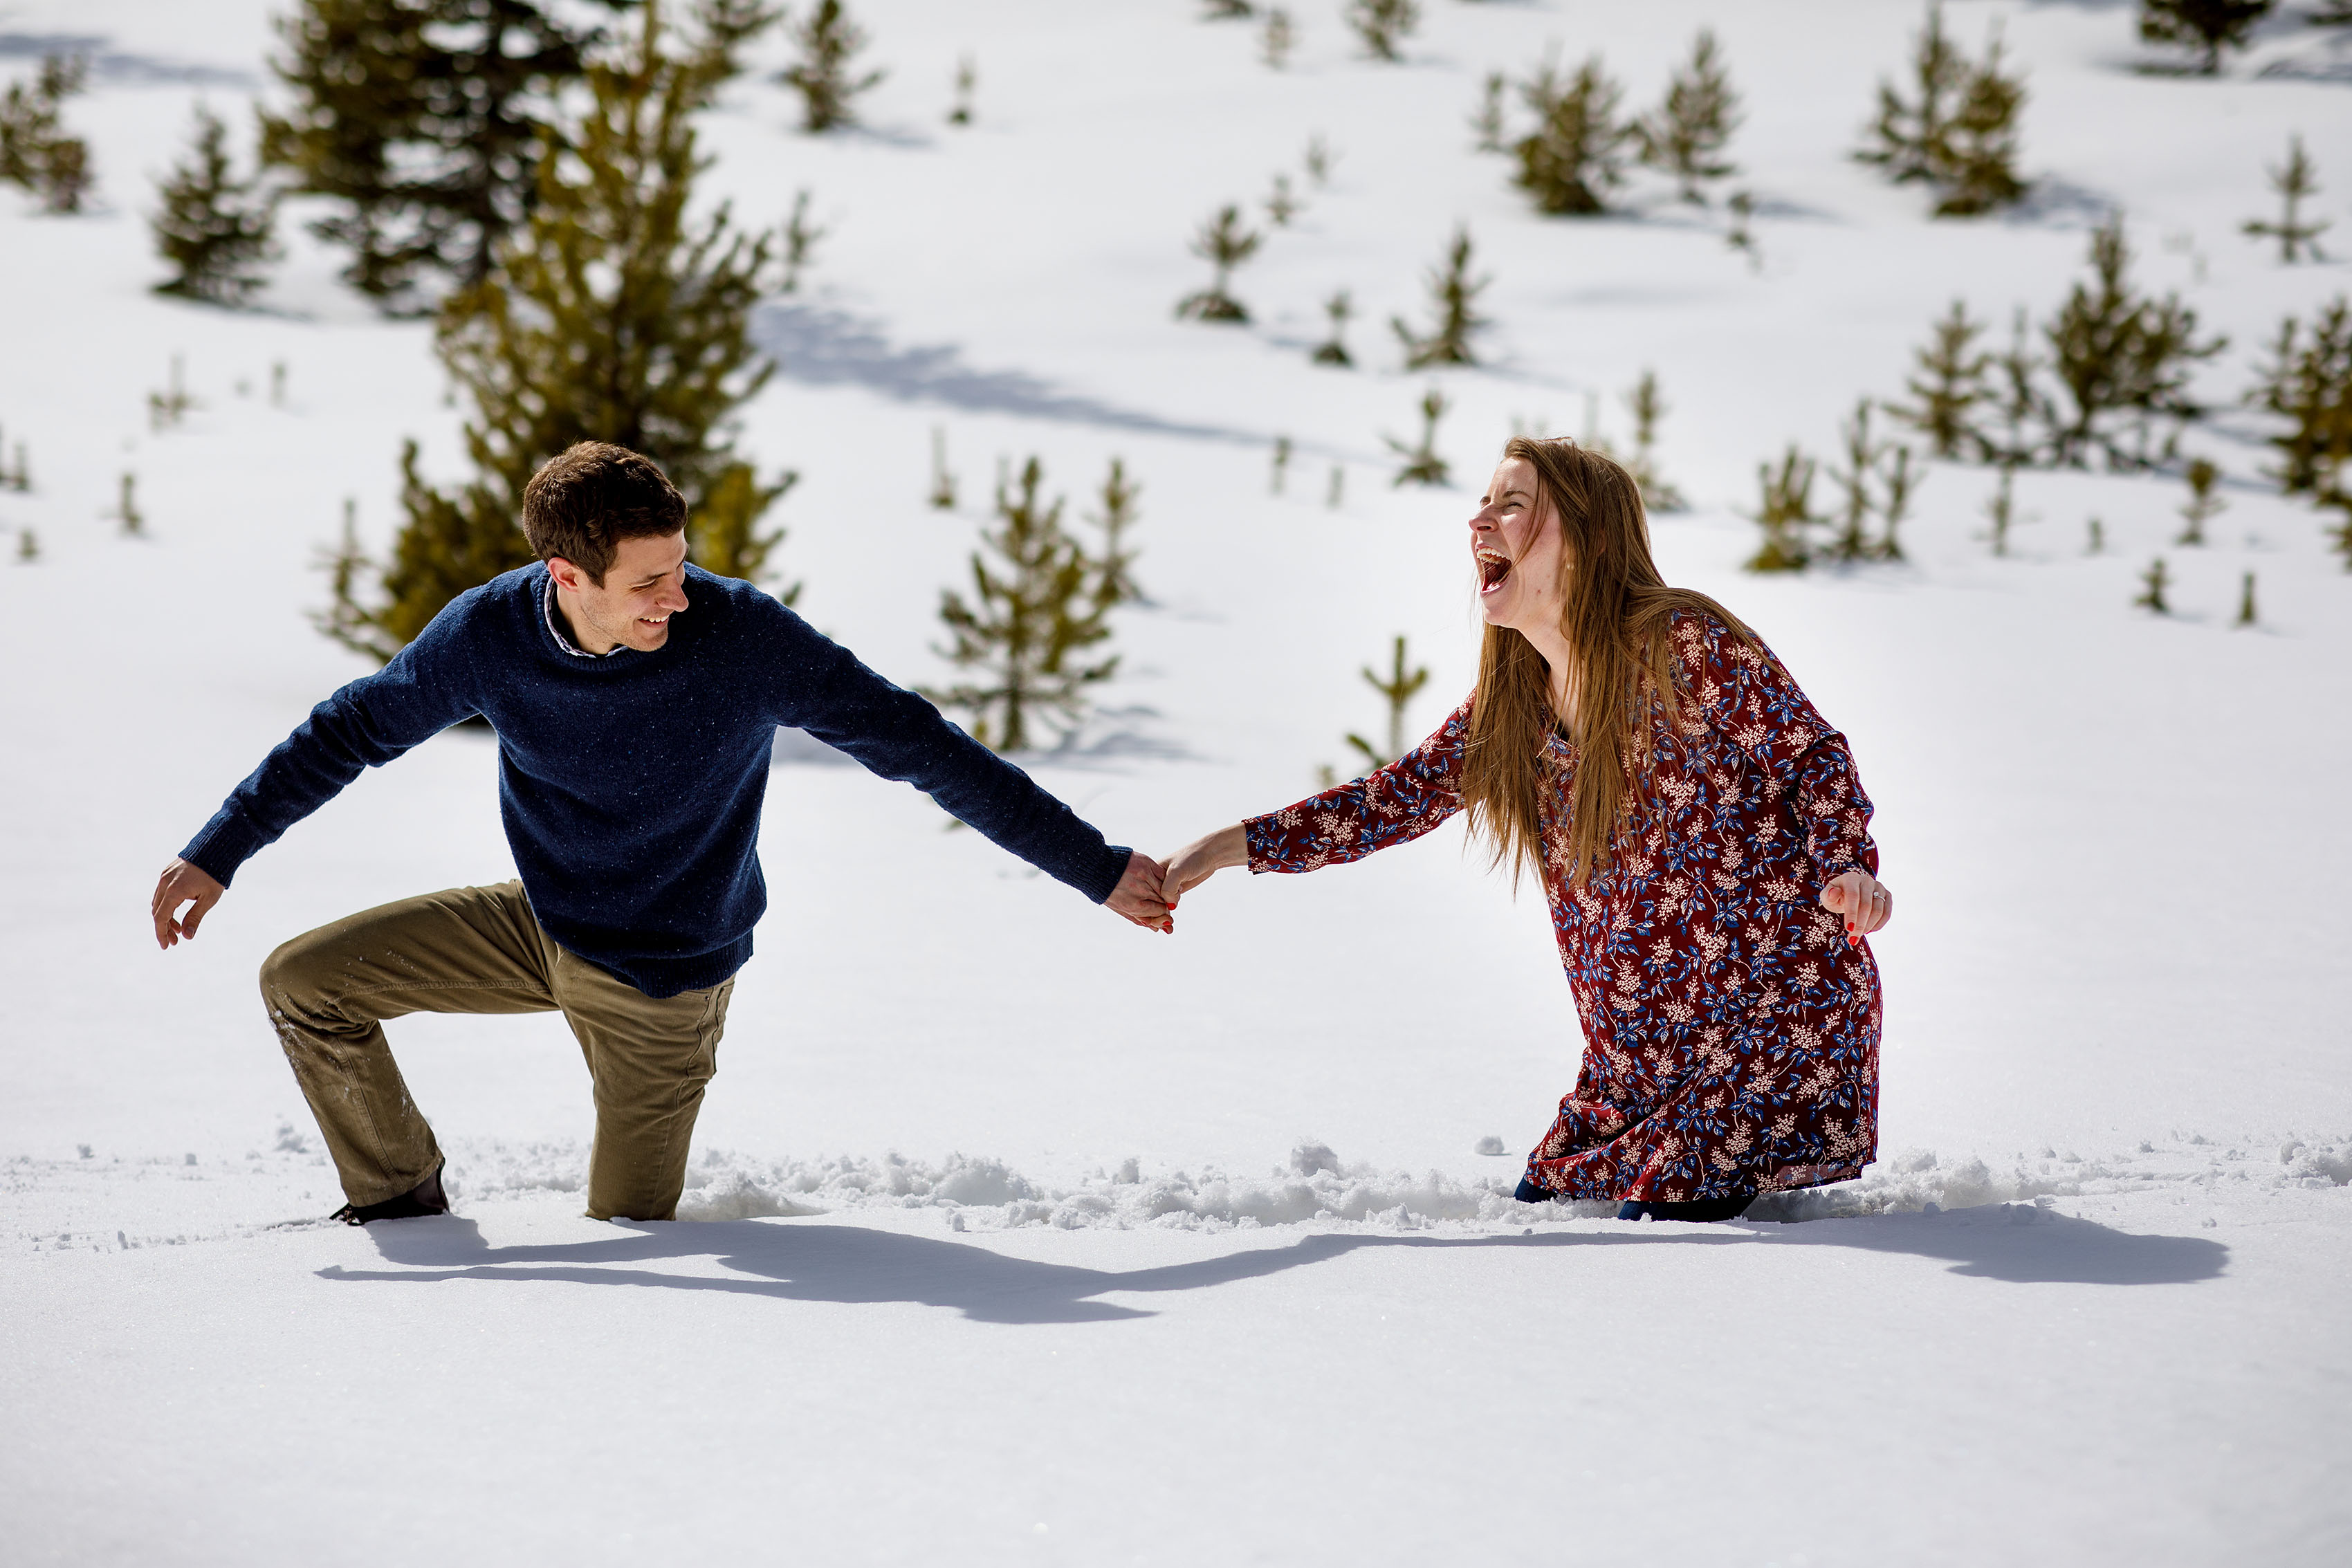 Jessica reacts after falling in the snow with Mike during their engagement session in Dillon